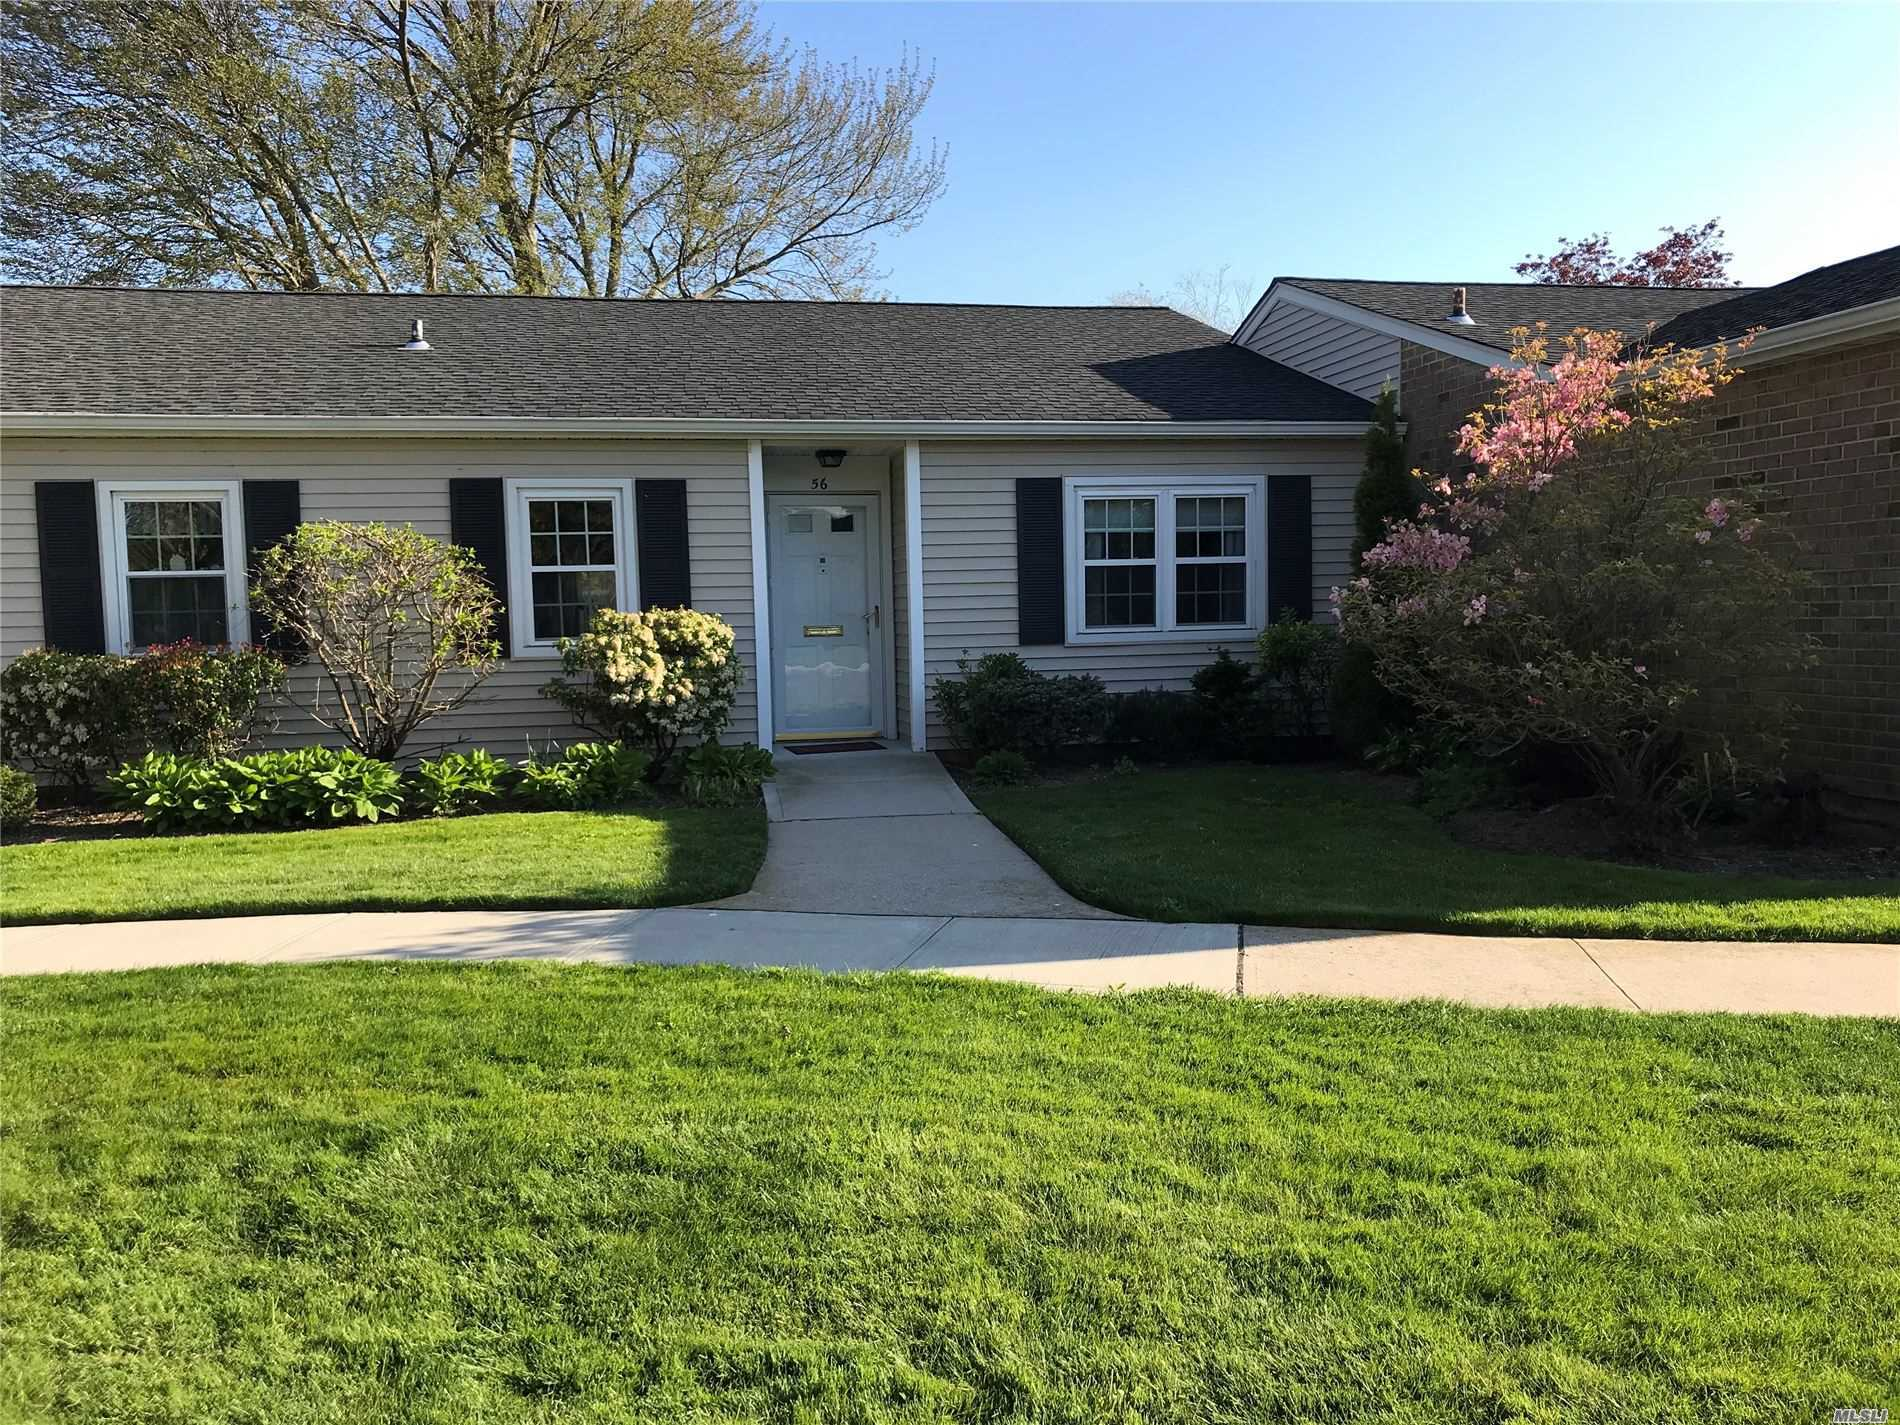 Property for sale at 56 N Harbor Road, Amityville NY 11701, Amityville,  New York 11701